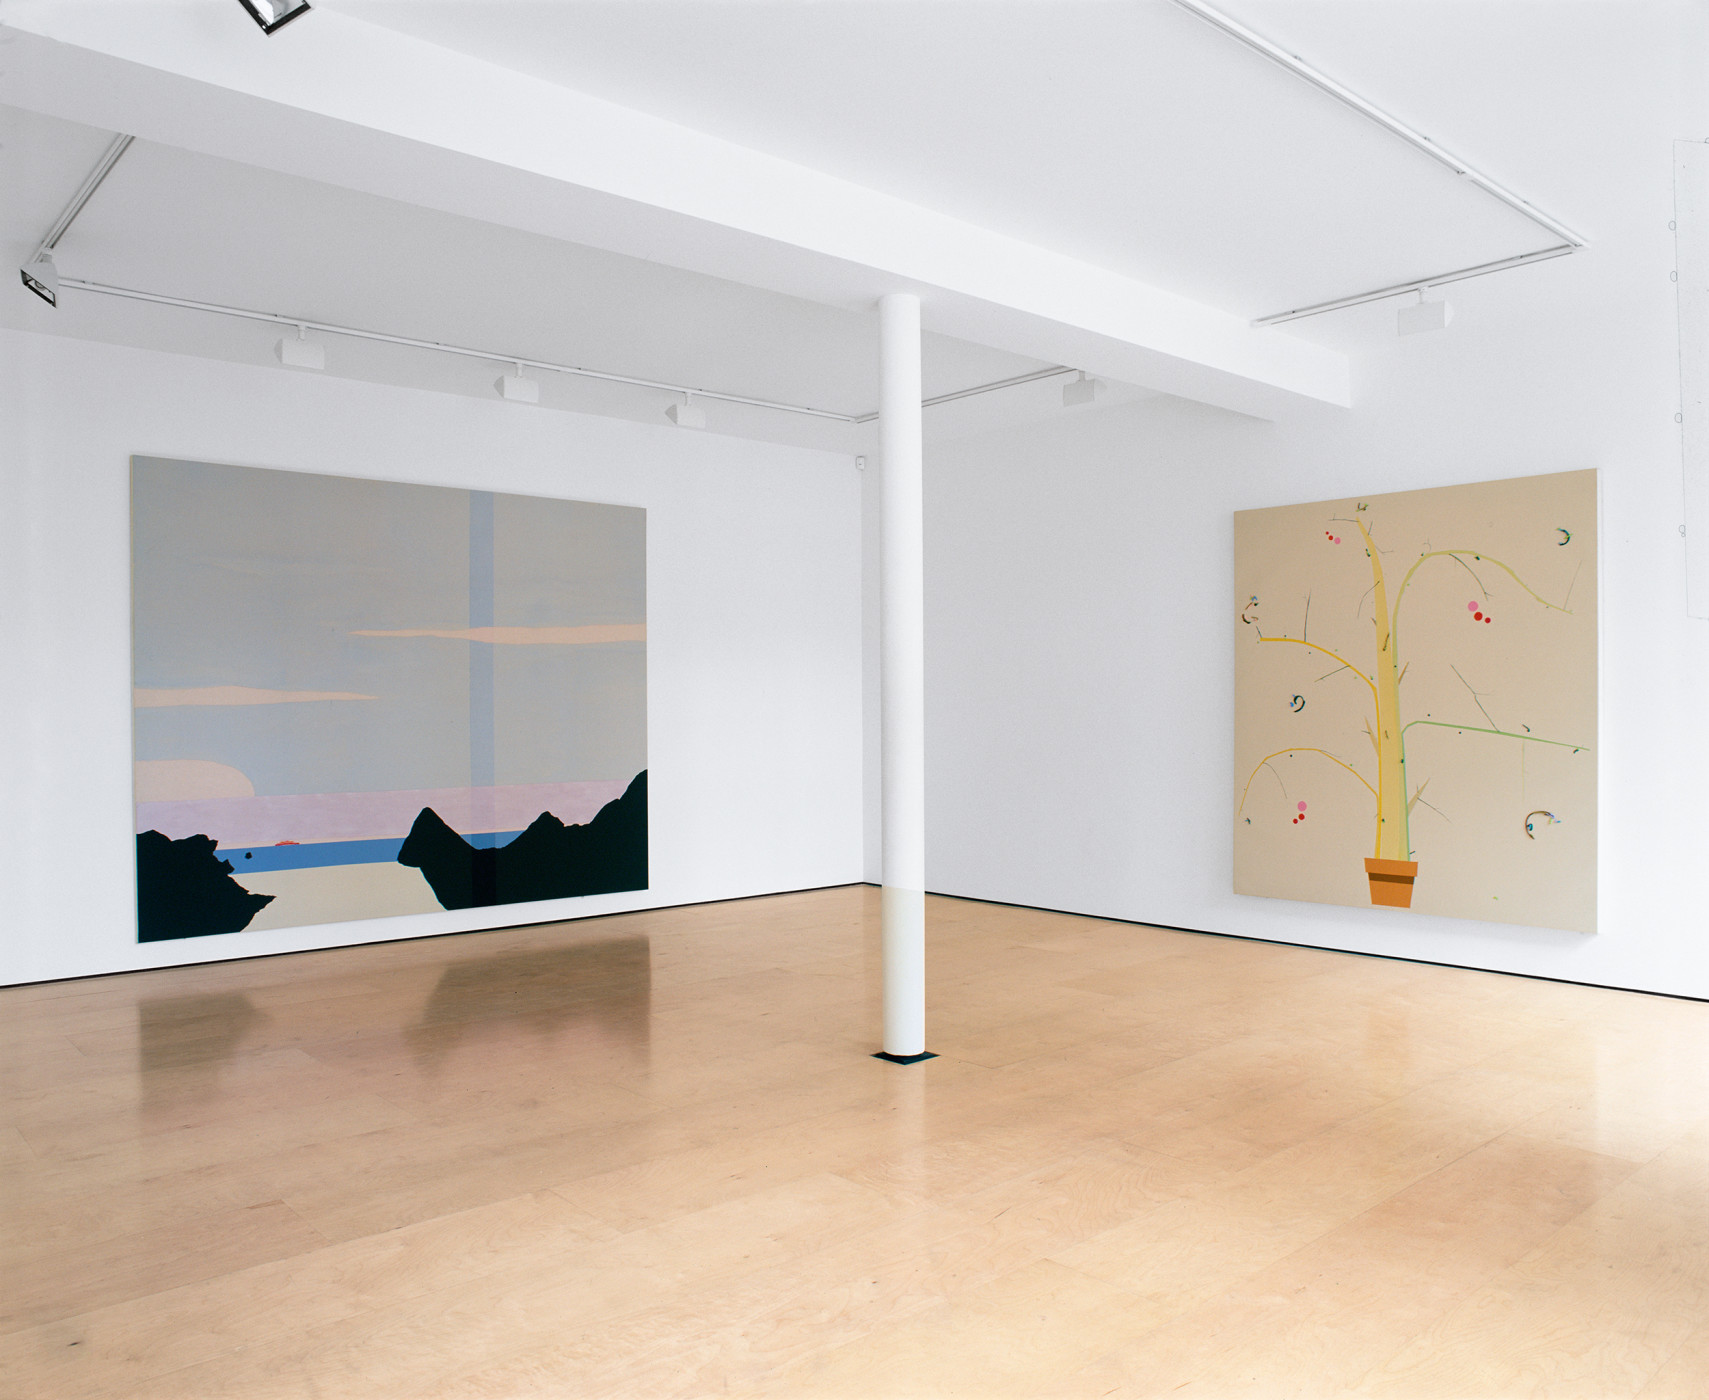 "<div class=""artwork_caption""><p>Installation view, 1997</p></div>"